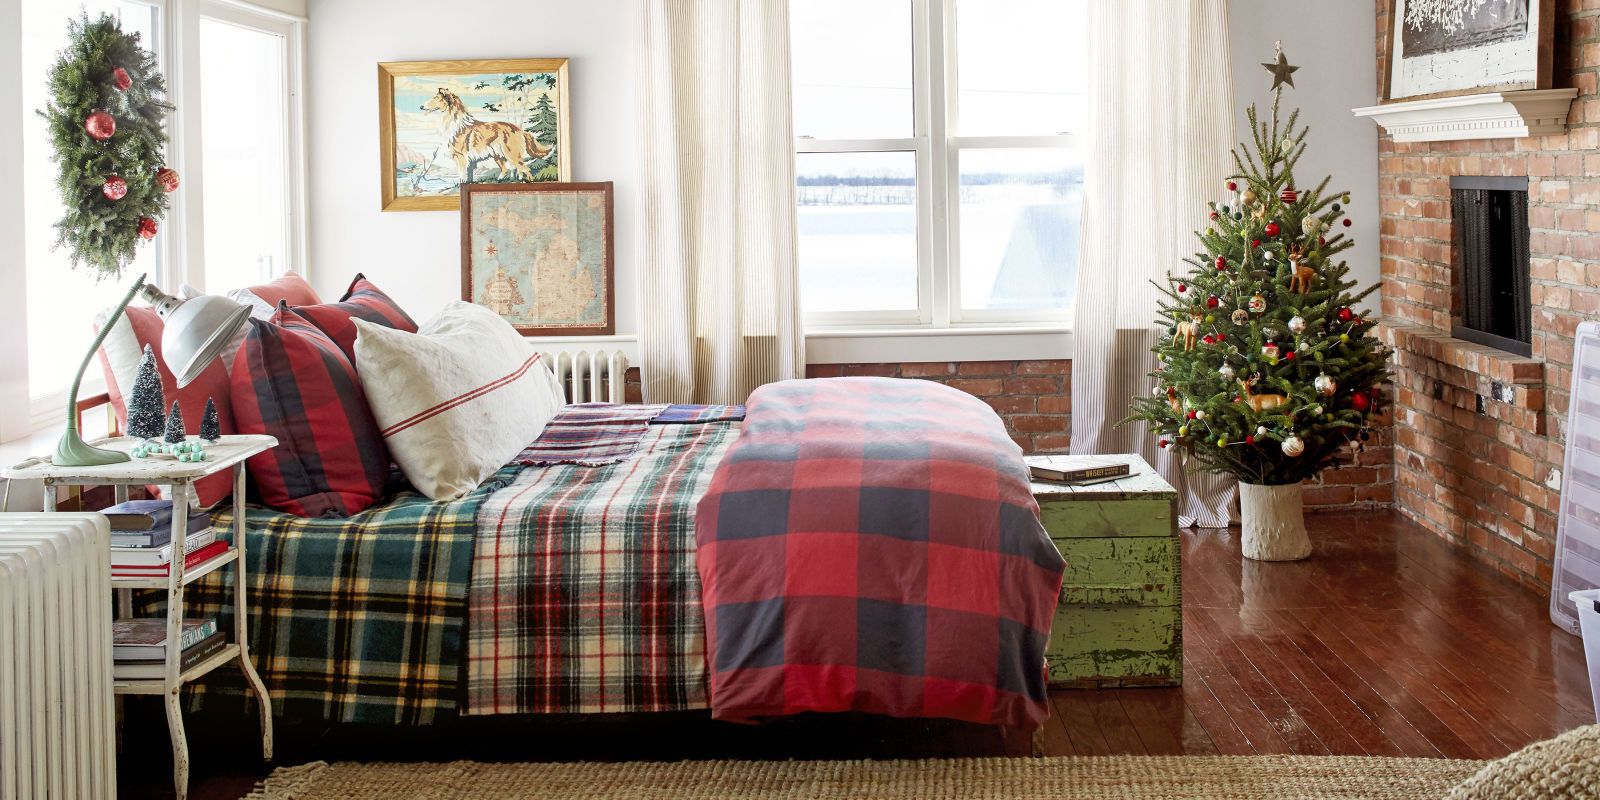 Christmas Bedroom Decorating Ideas  Christmas Bedroom Decorating Ideas Farmhouse Christmas